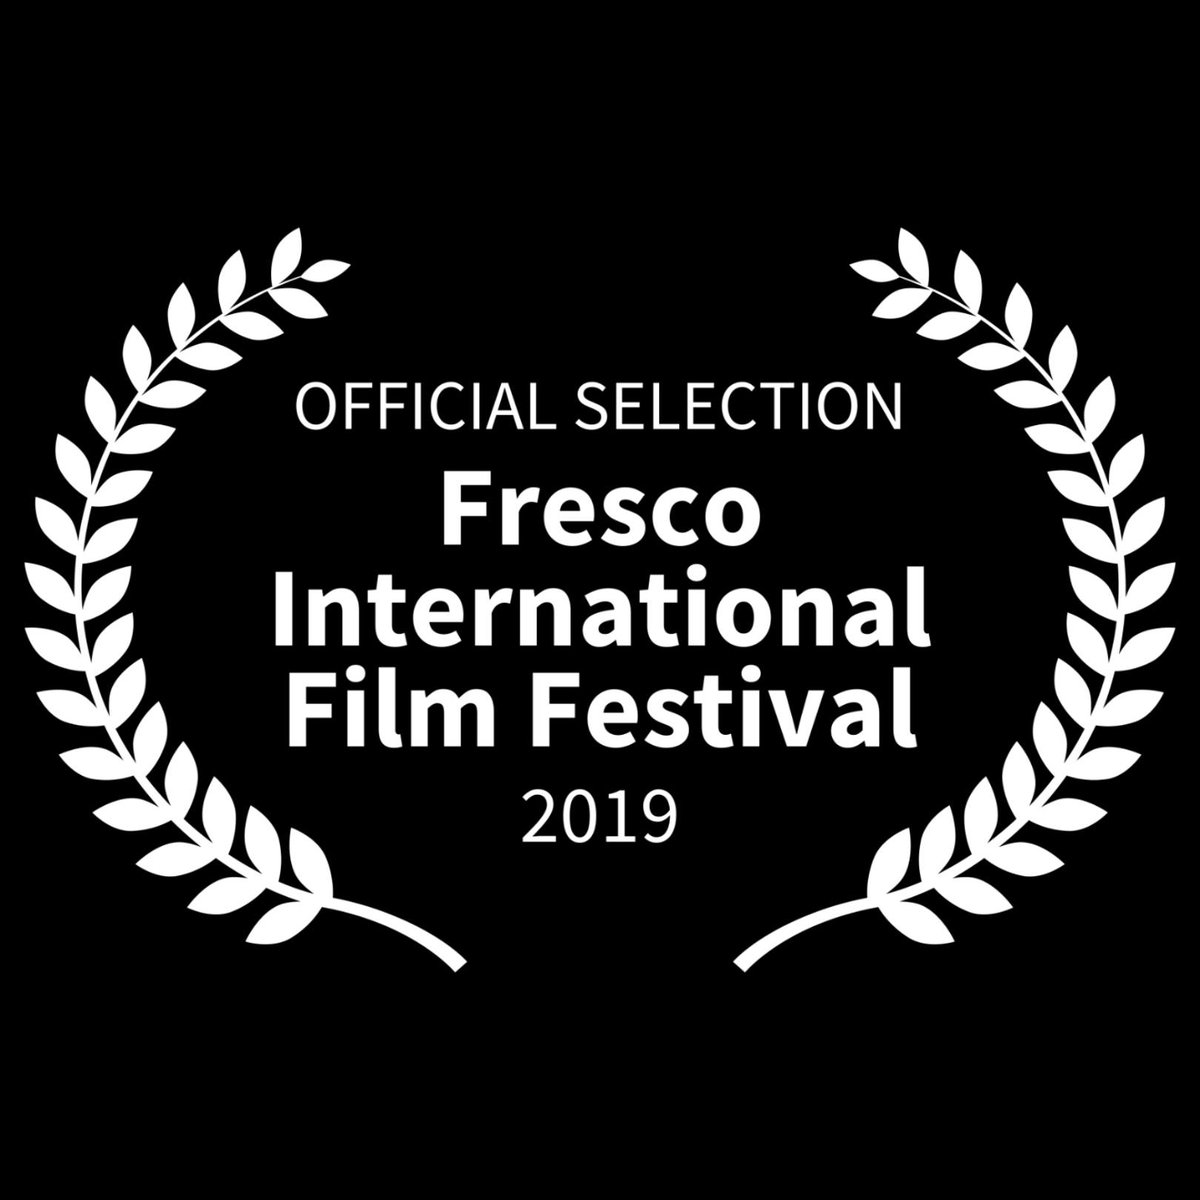 Our global film festival tour continues! Next stop: Yerevan, Armenia. We're an official selection at the Fresco International Film Festival! #filmfestivals #indiefilm #shortfilms <br>http://pic.twitter.com/9yqbOCsbGc